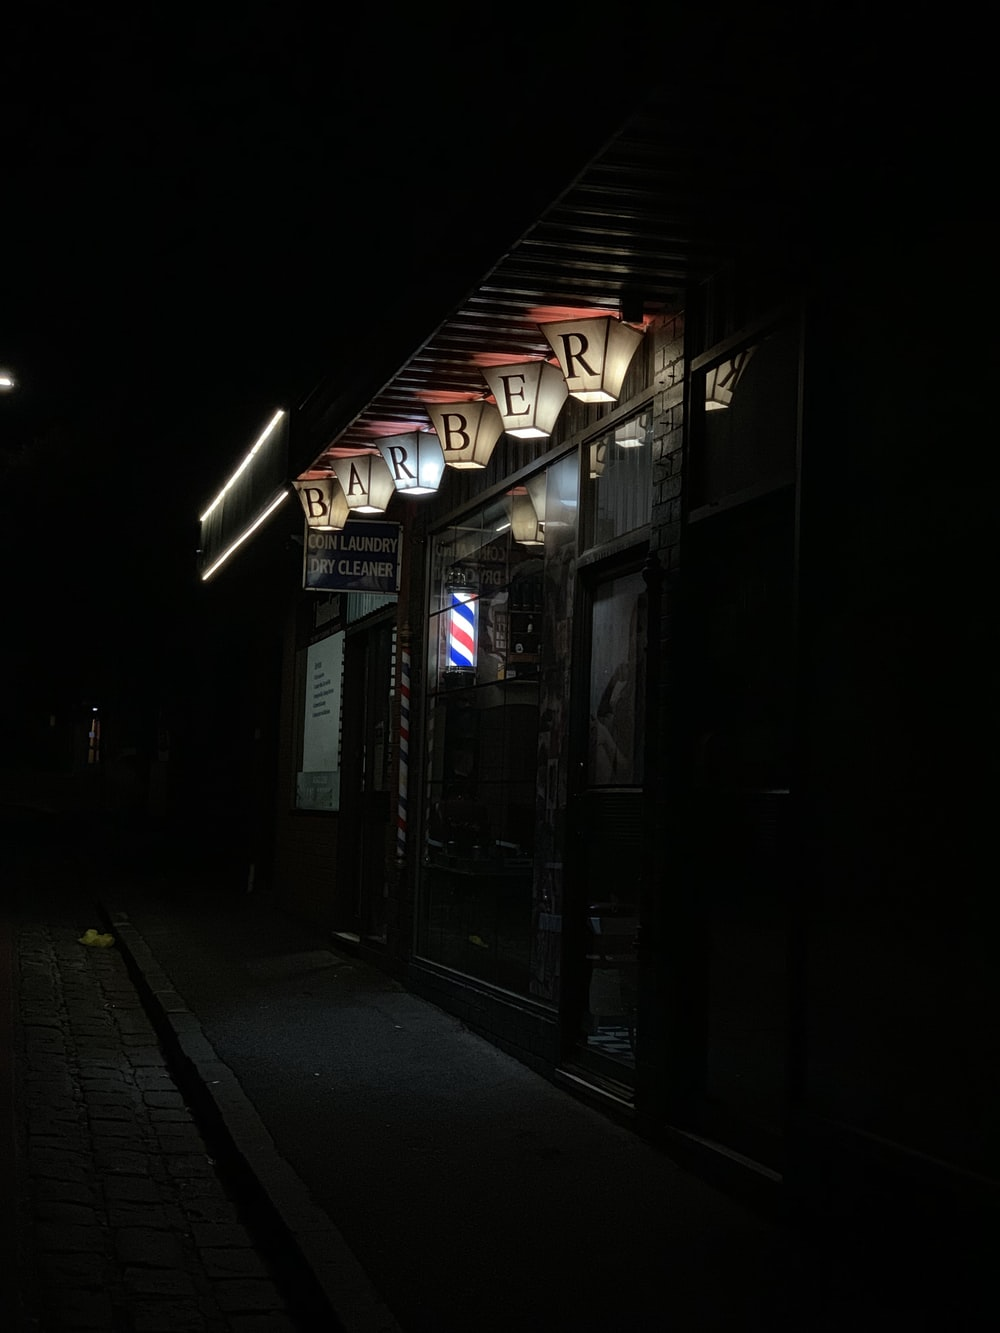 barber shop during night time